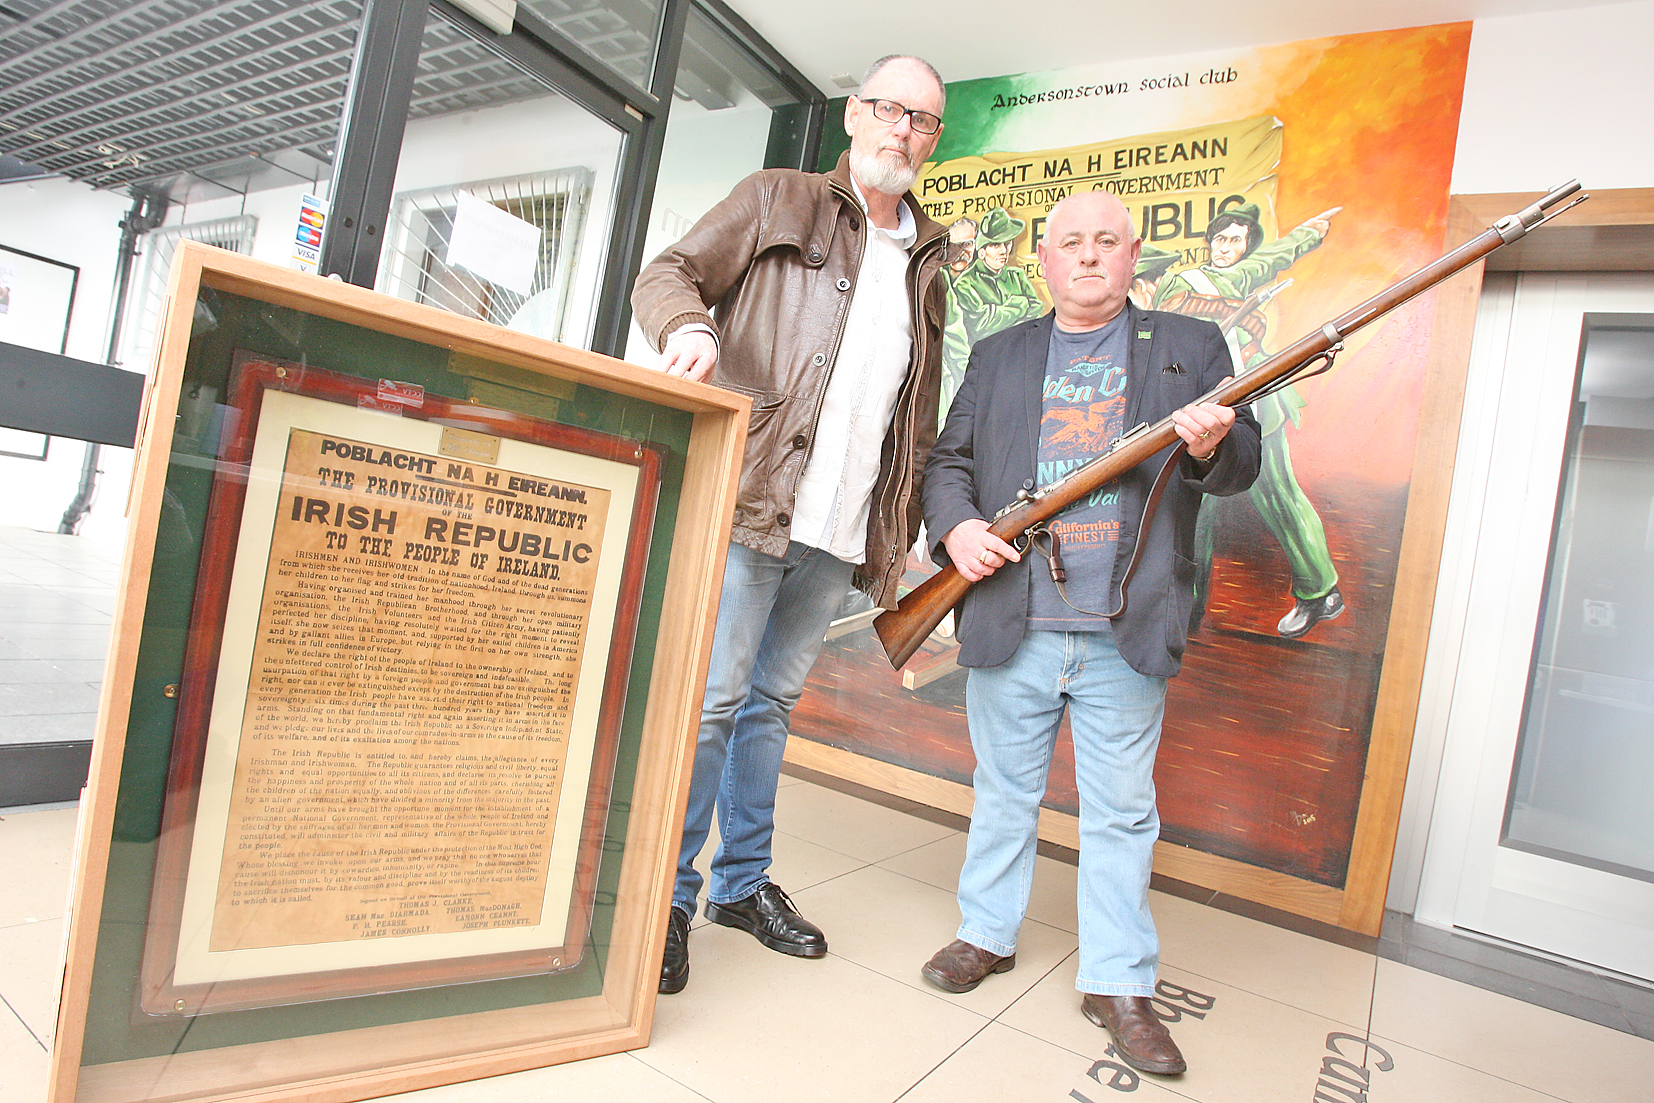 Pd 1916 easter rising exhibition 6251mj16